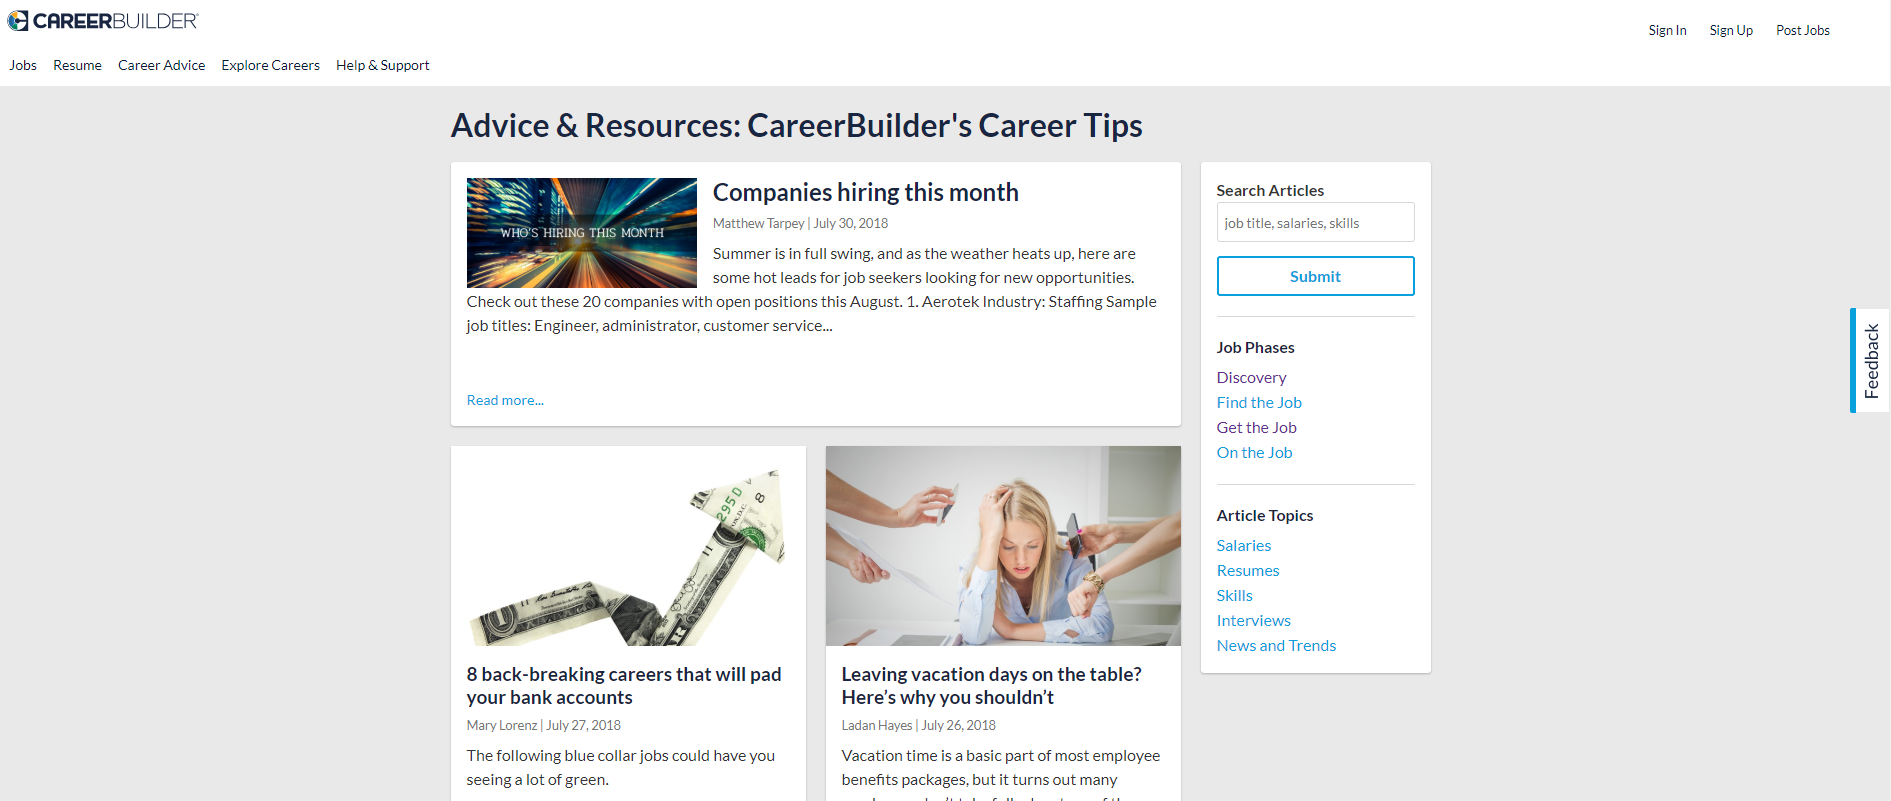 Job Search on the Internet: a selection of news